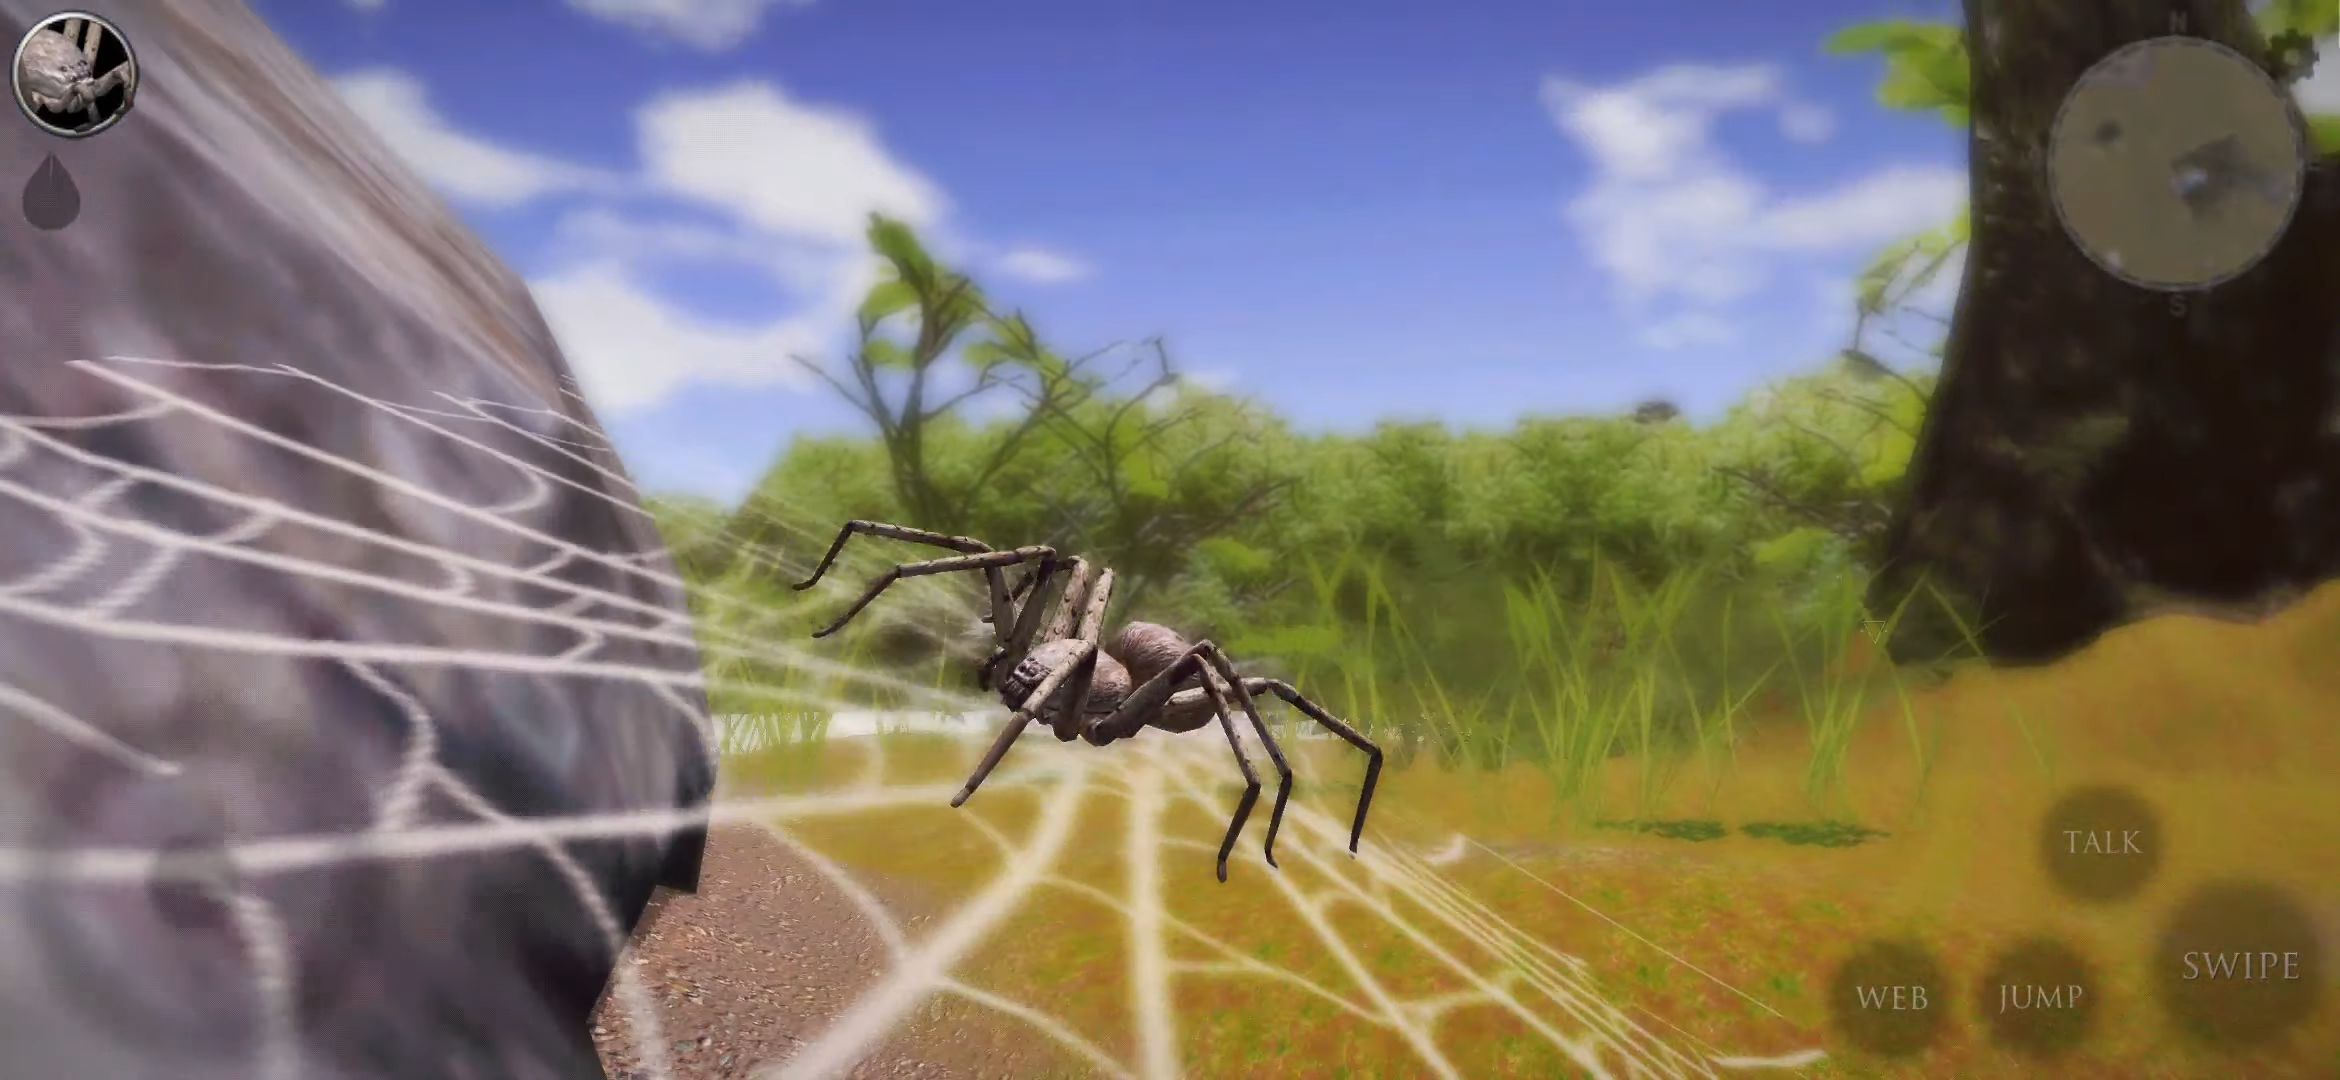 Ultimate Spider Simulator 2 para Android